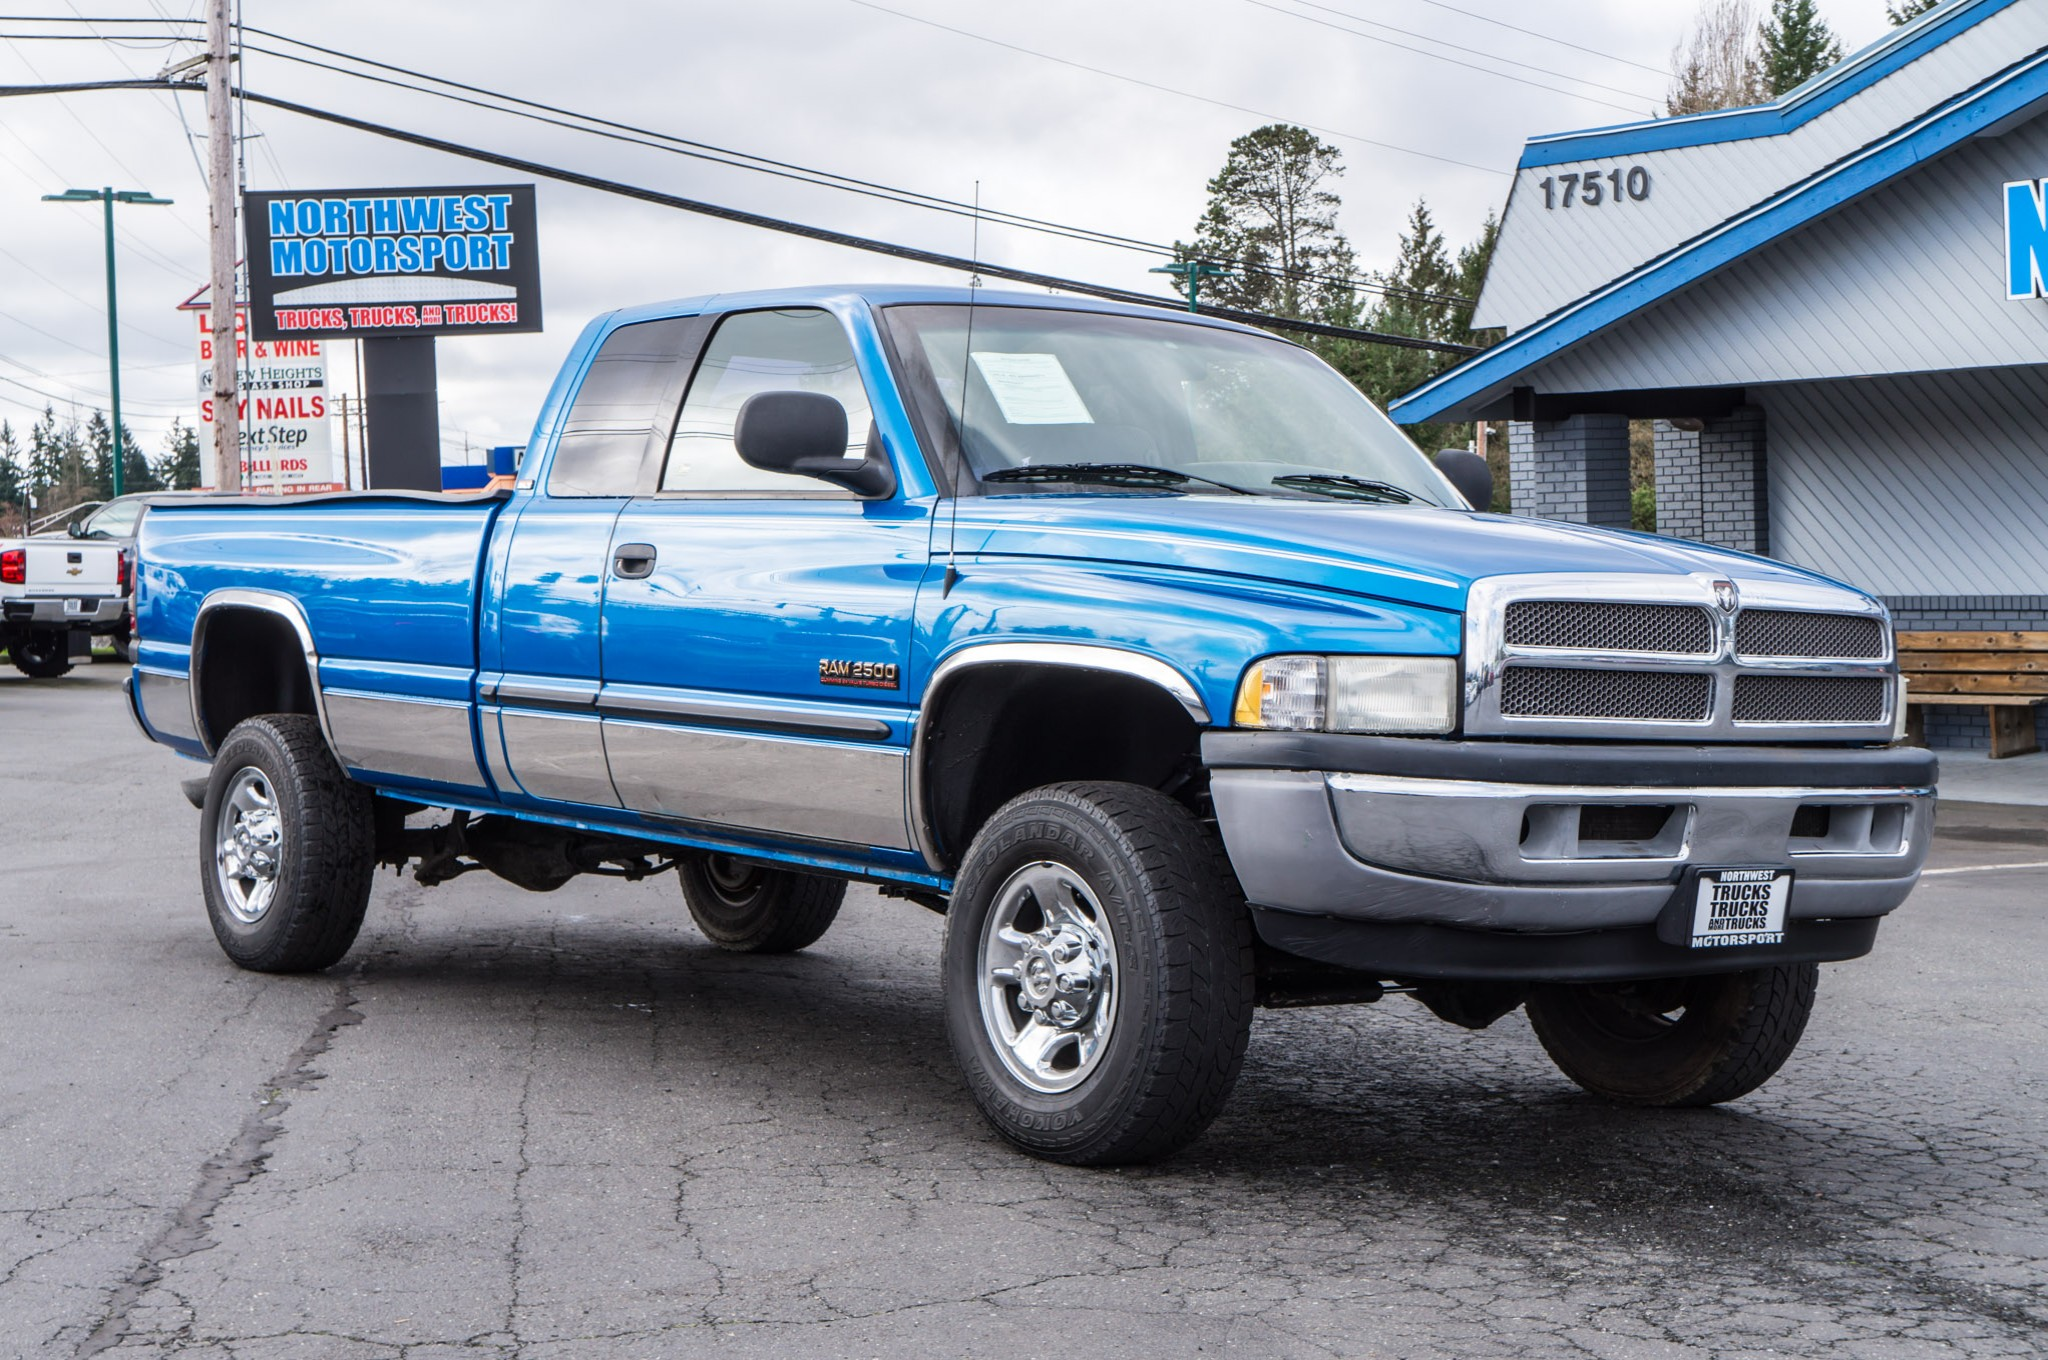 Used 2001 Dodge Ram 2500 Slt 4x4 Diesel Truck For Sale